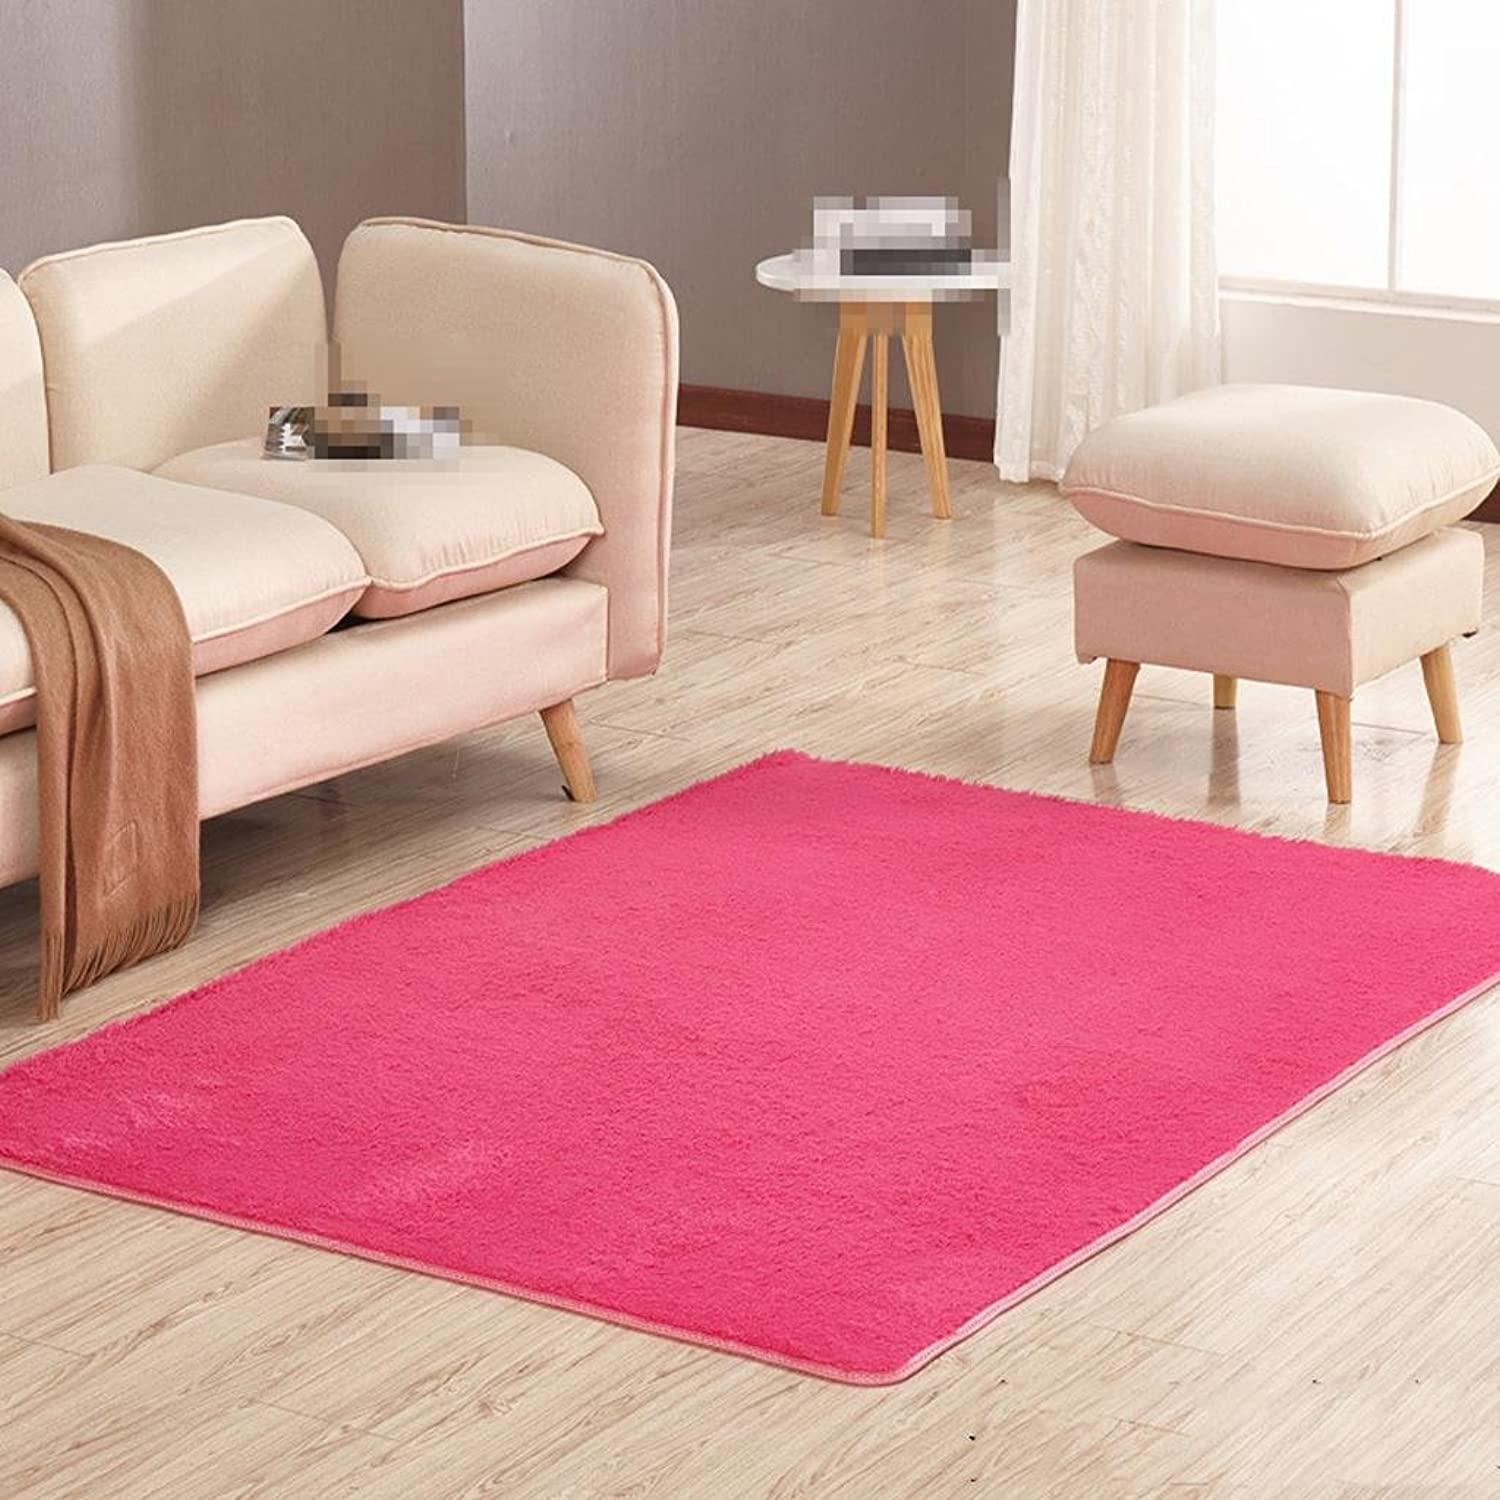 DYI Thick nonslip carpet, living room coffee table bedroom mats, mats, 60  160cm